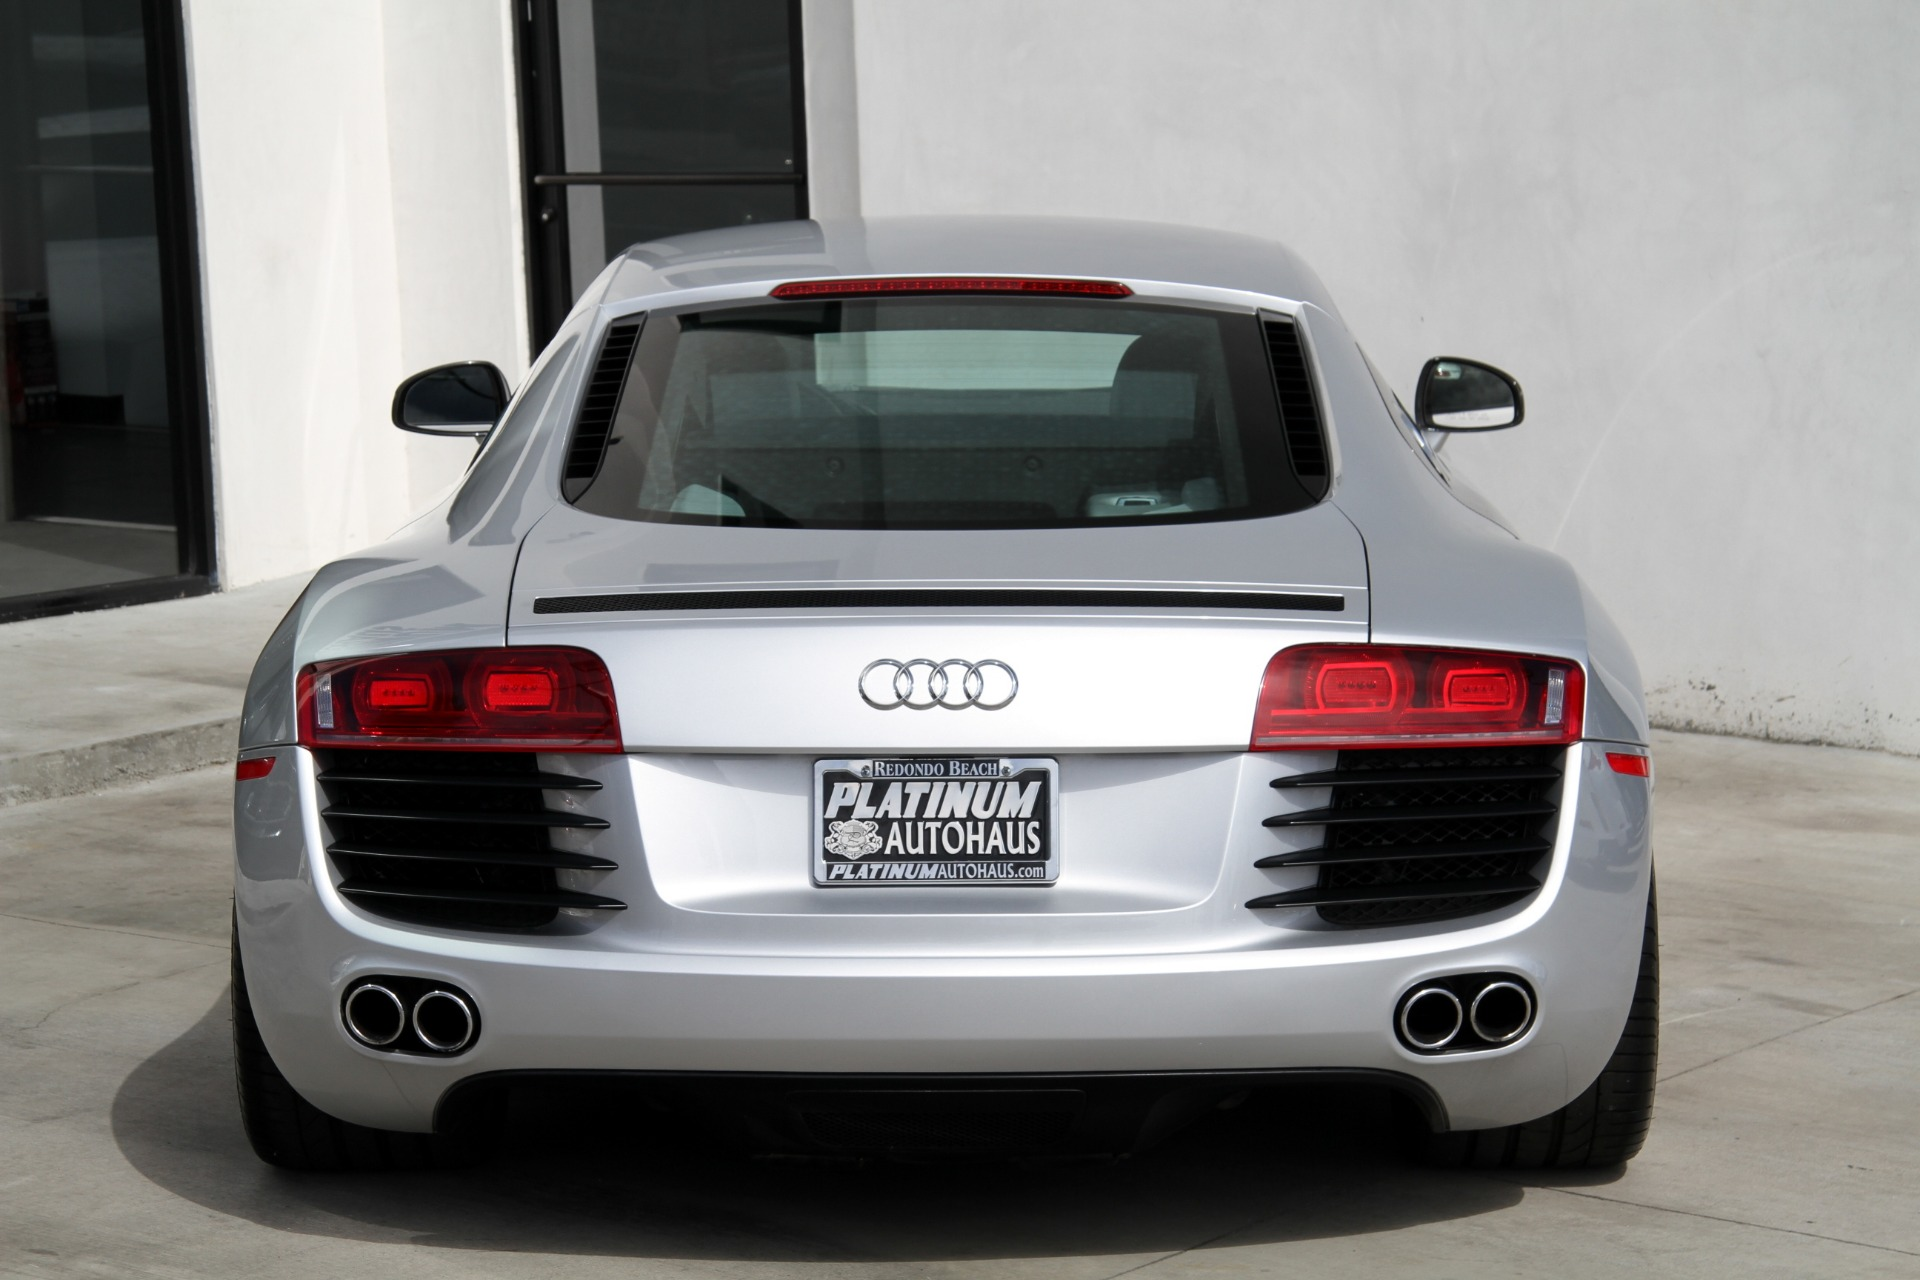 2012 Audi R8 4.2 quattro *** RARE MANUAL TRANSMISSION *** Stock # 6150 for sale near Redondo ...